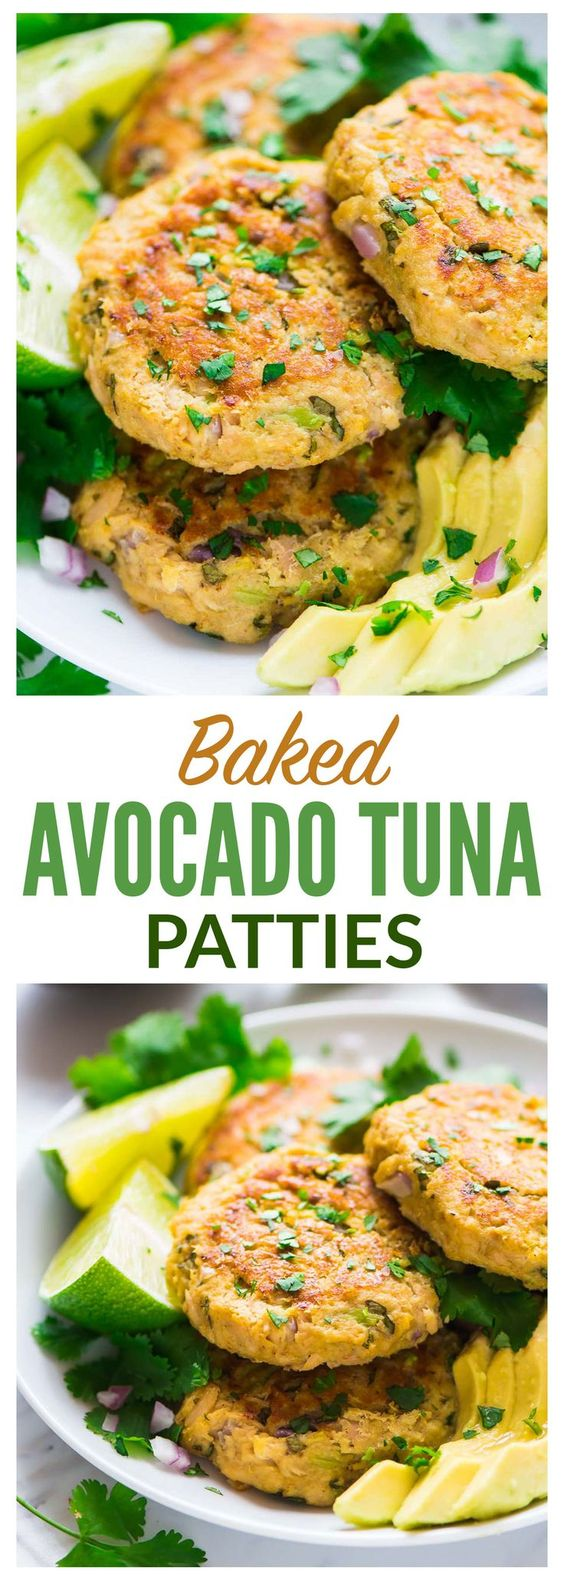 Avocado Tuna Cakes